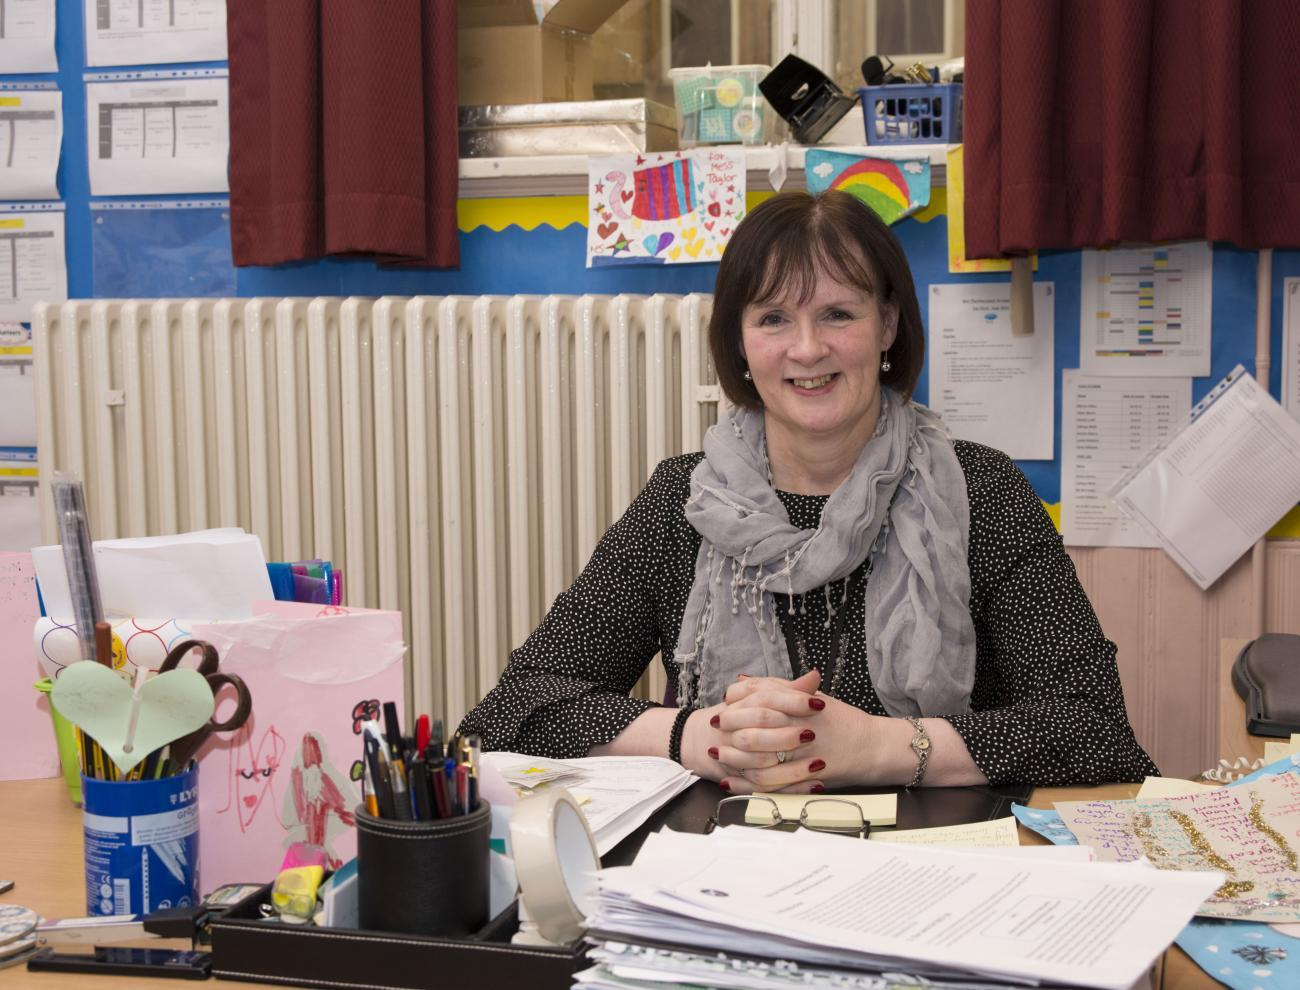 Shirley Taylor, Head Teacher, Annette St Primary School